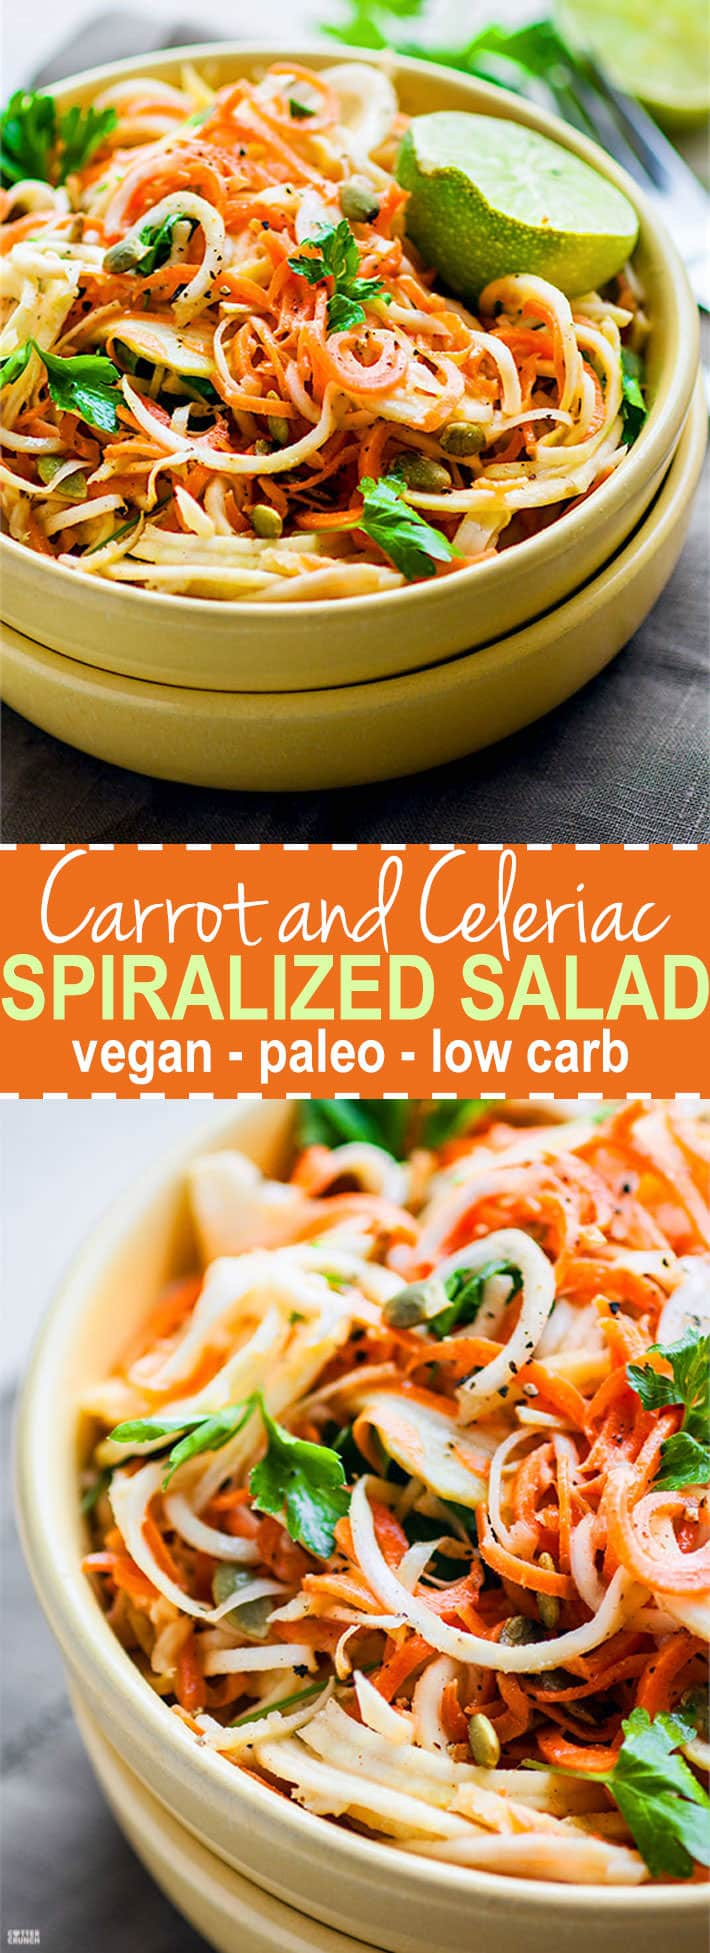 Easy Carrot Celeriac Spiralized Salad! This root vegetable spiralized salad is simple, light, and healthy to make, not to mention delicious! A paleo, vegan, and low carb noodle salad option you can make under 30 minutes. All you need are the right spices and oils. Celeriac is light and low carb but extremely versatile!